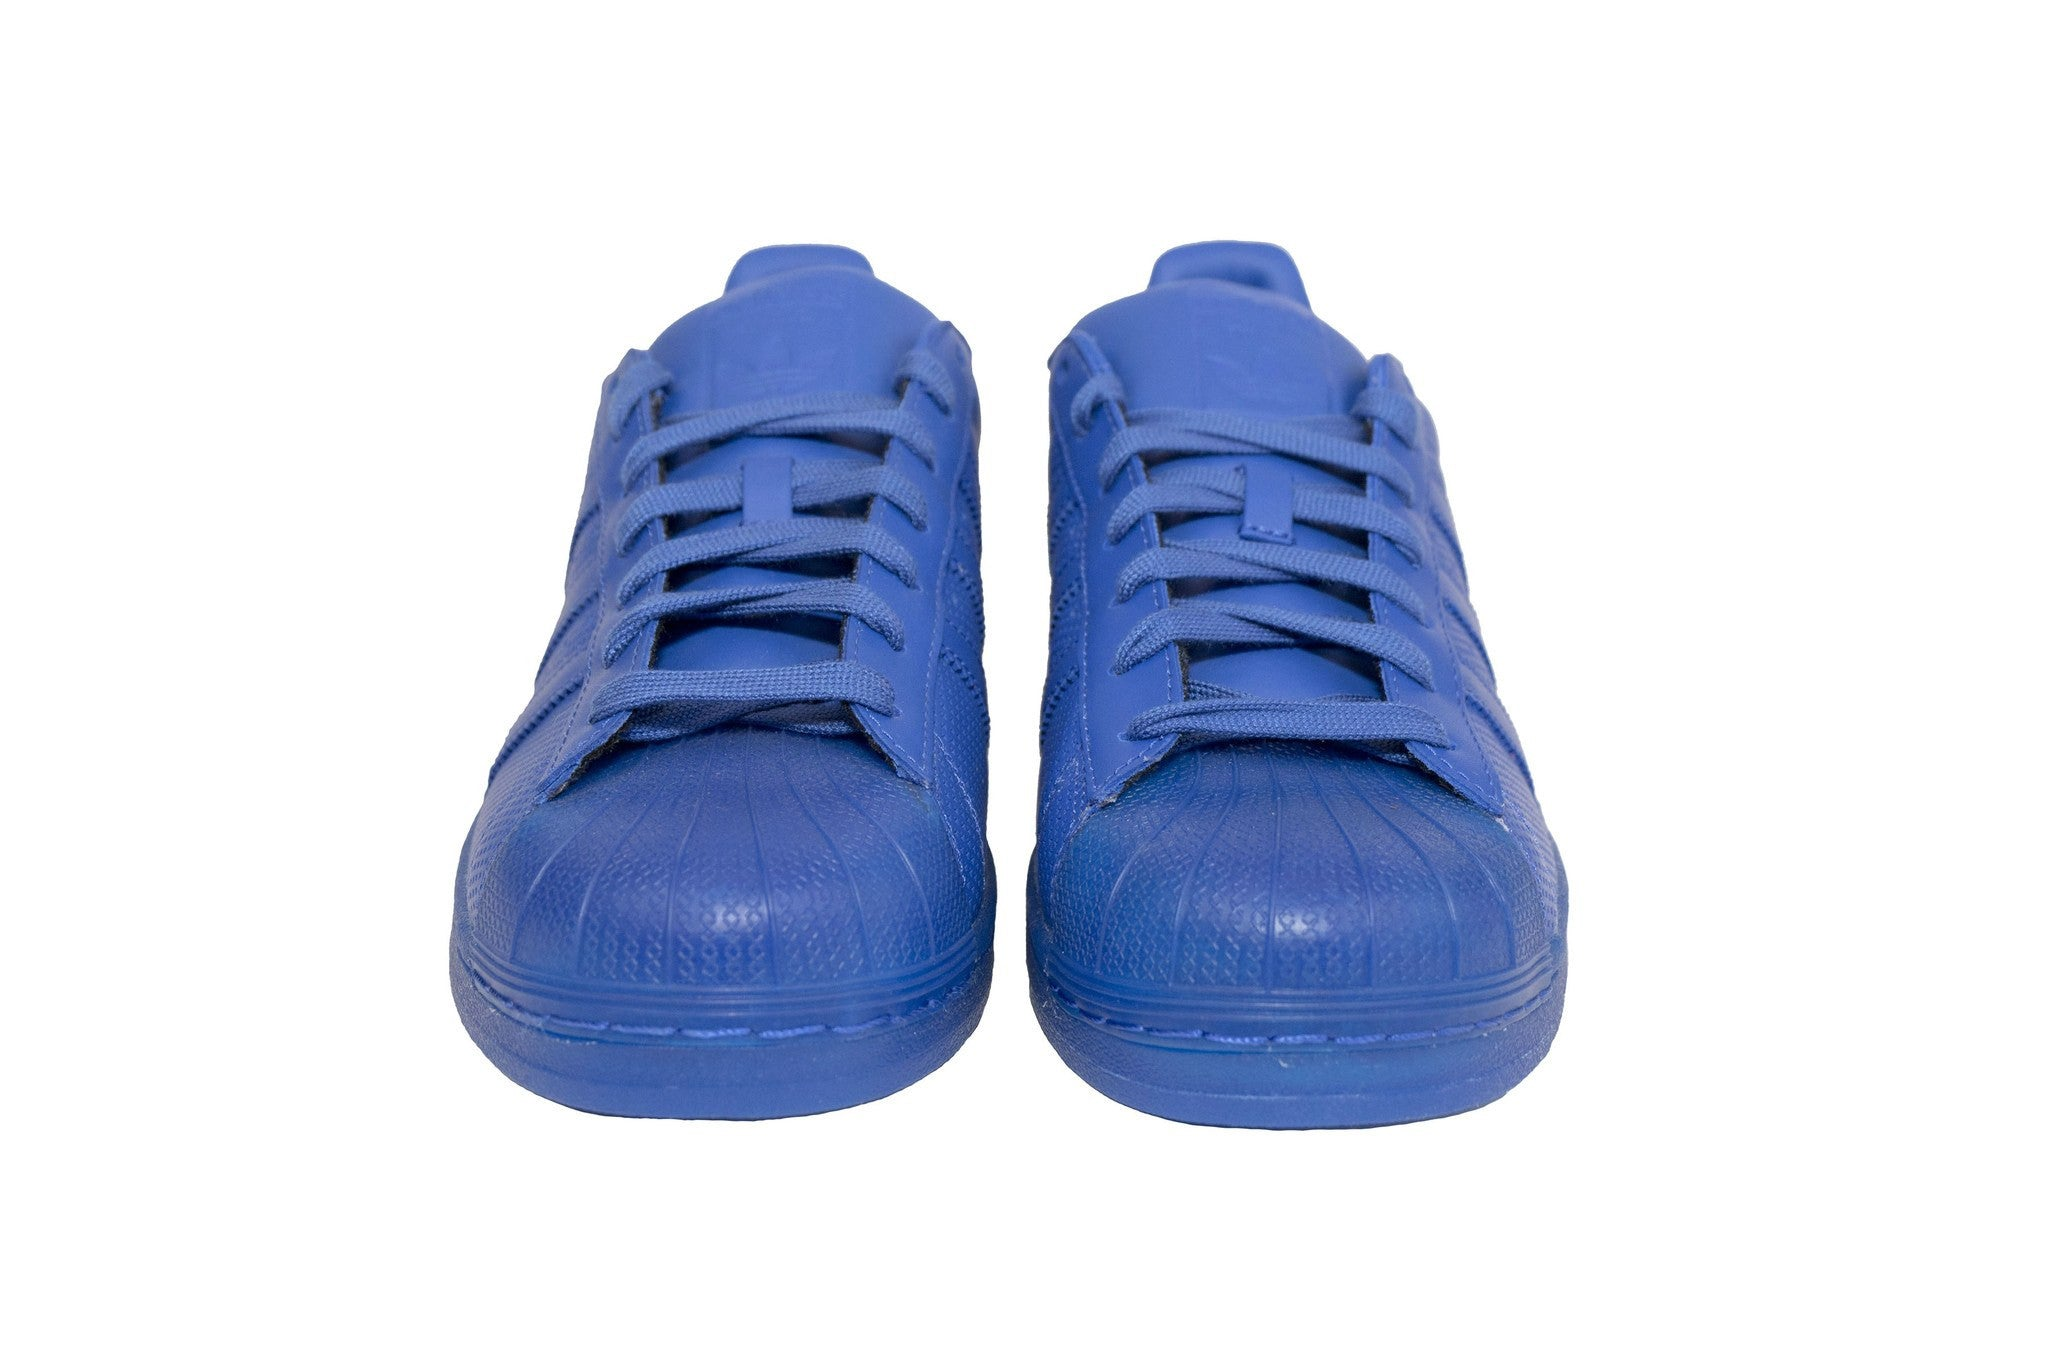 Adidas Superstar Blue - leaders1354